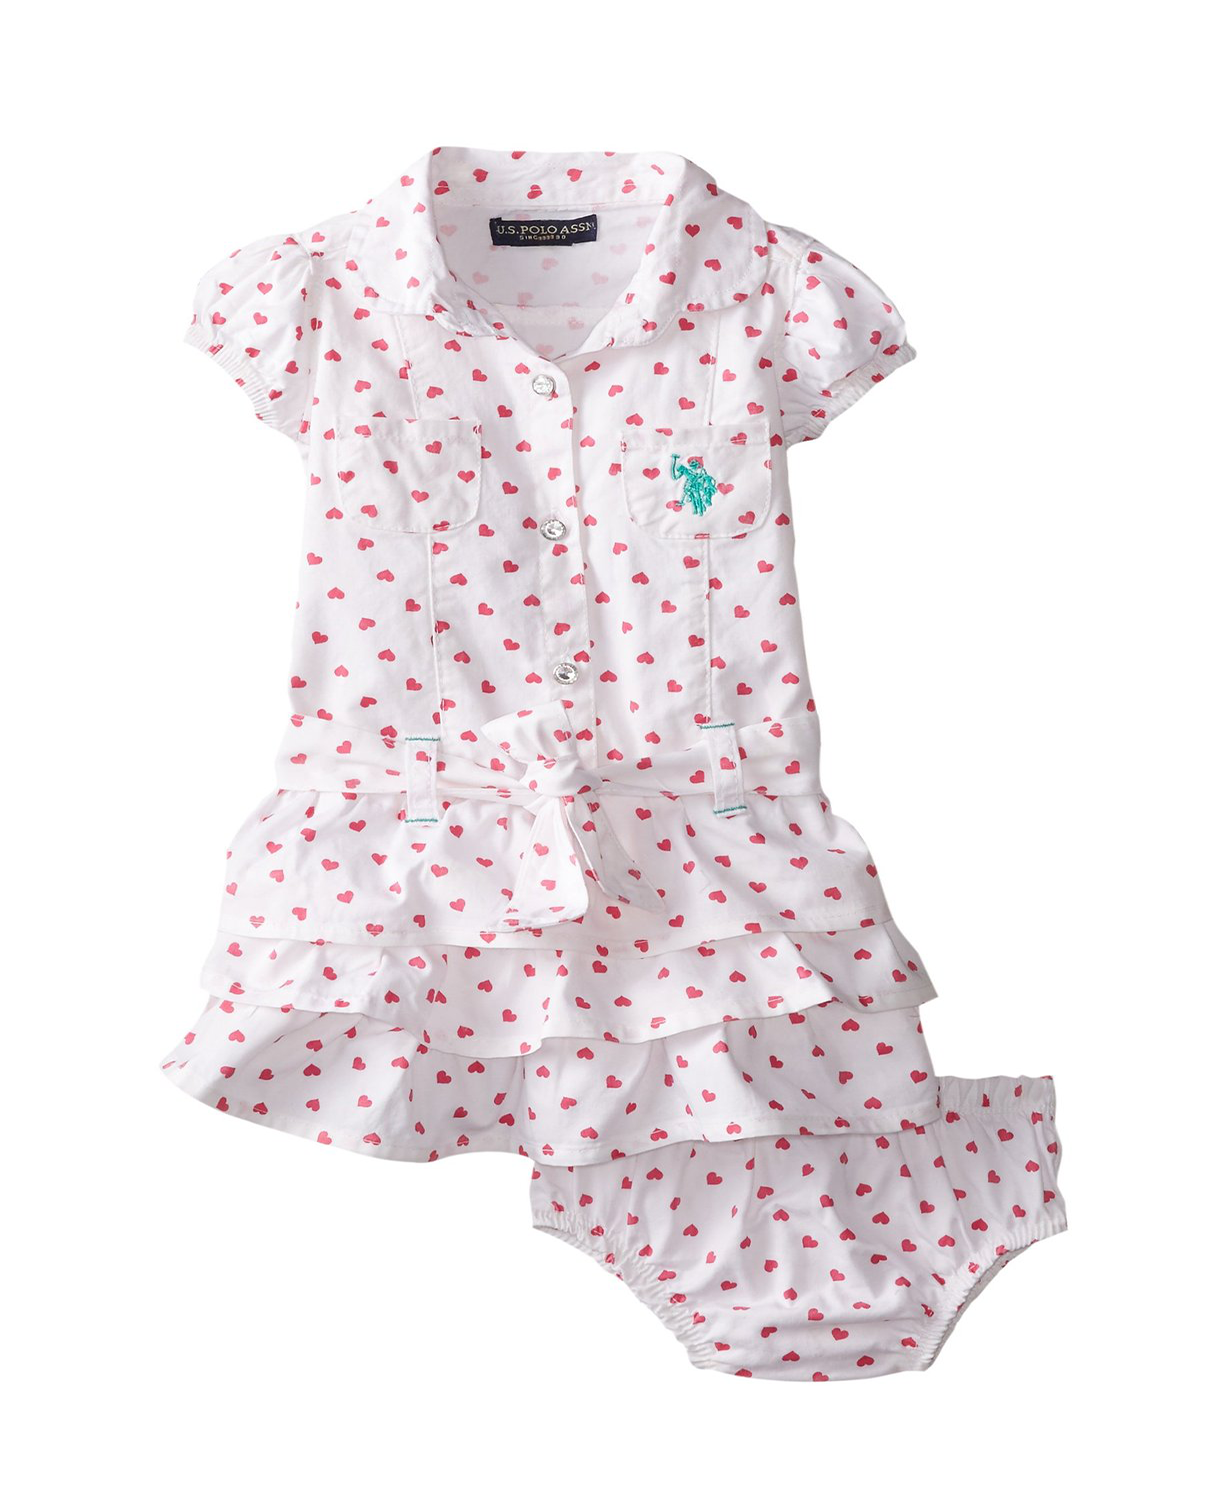 Find the best baby girl clothing for your little one ... - photo#30